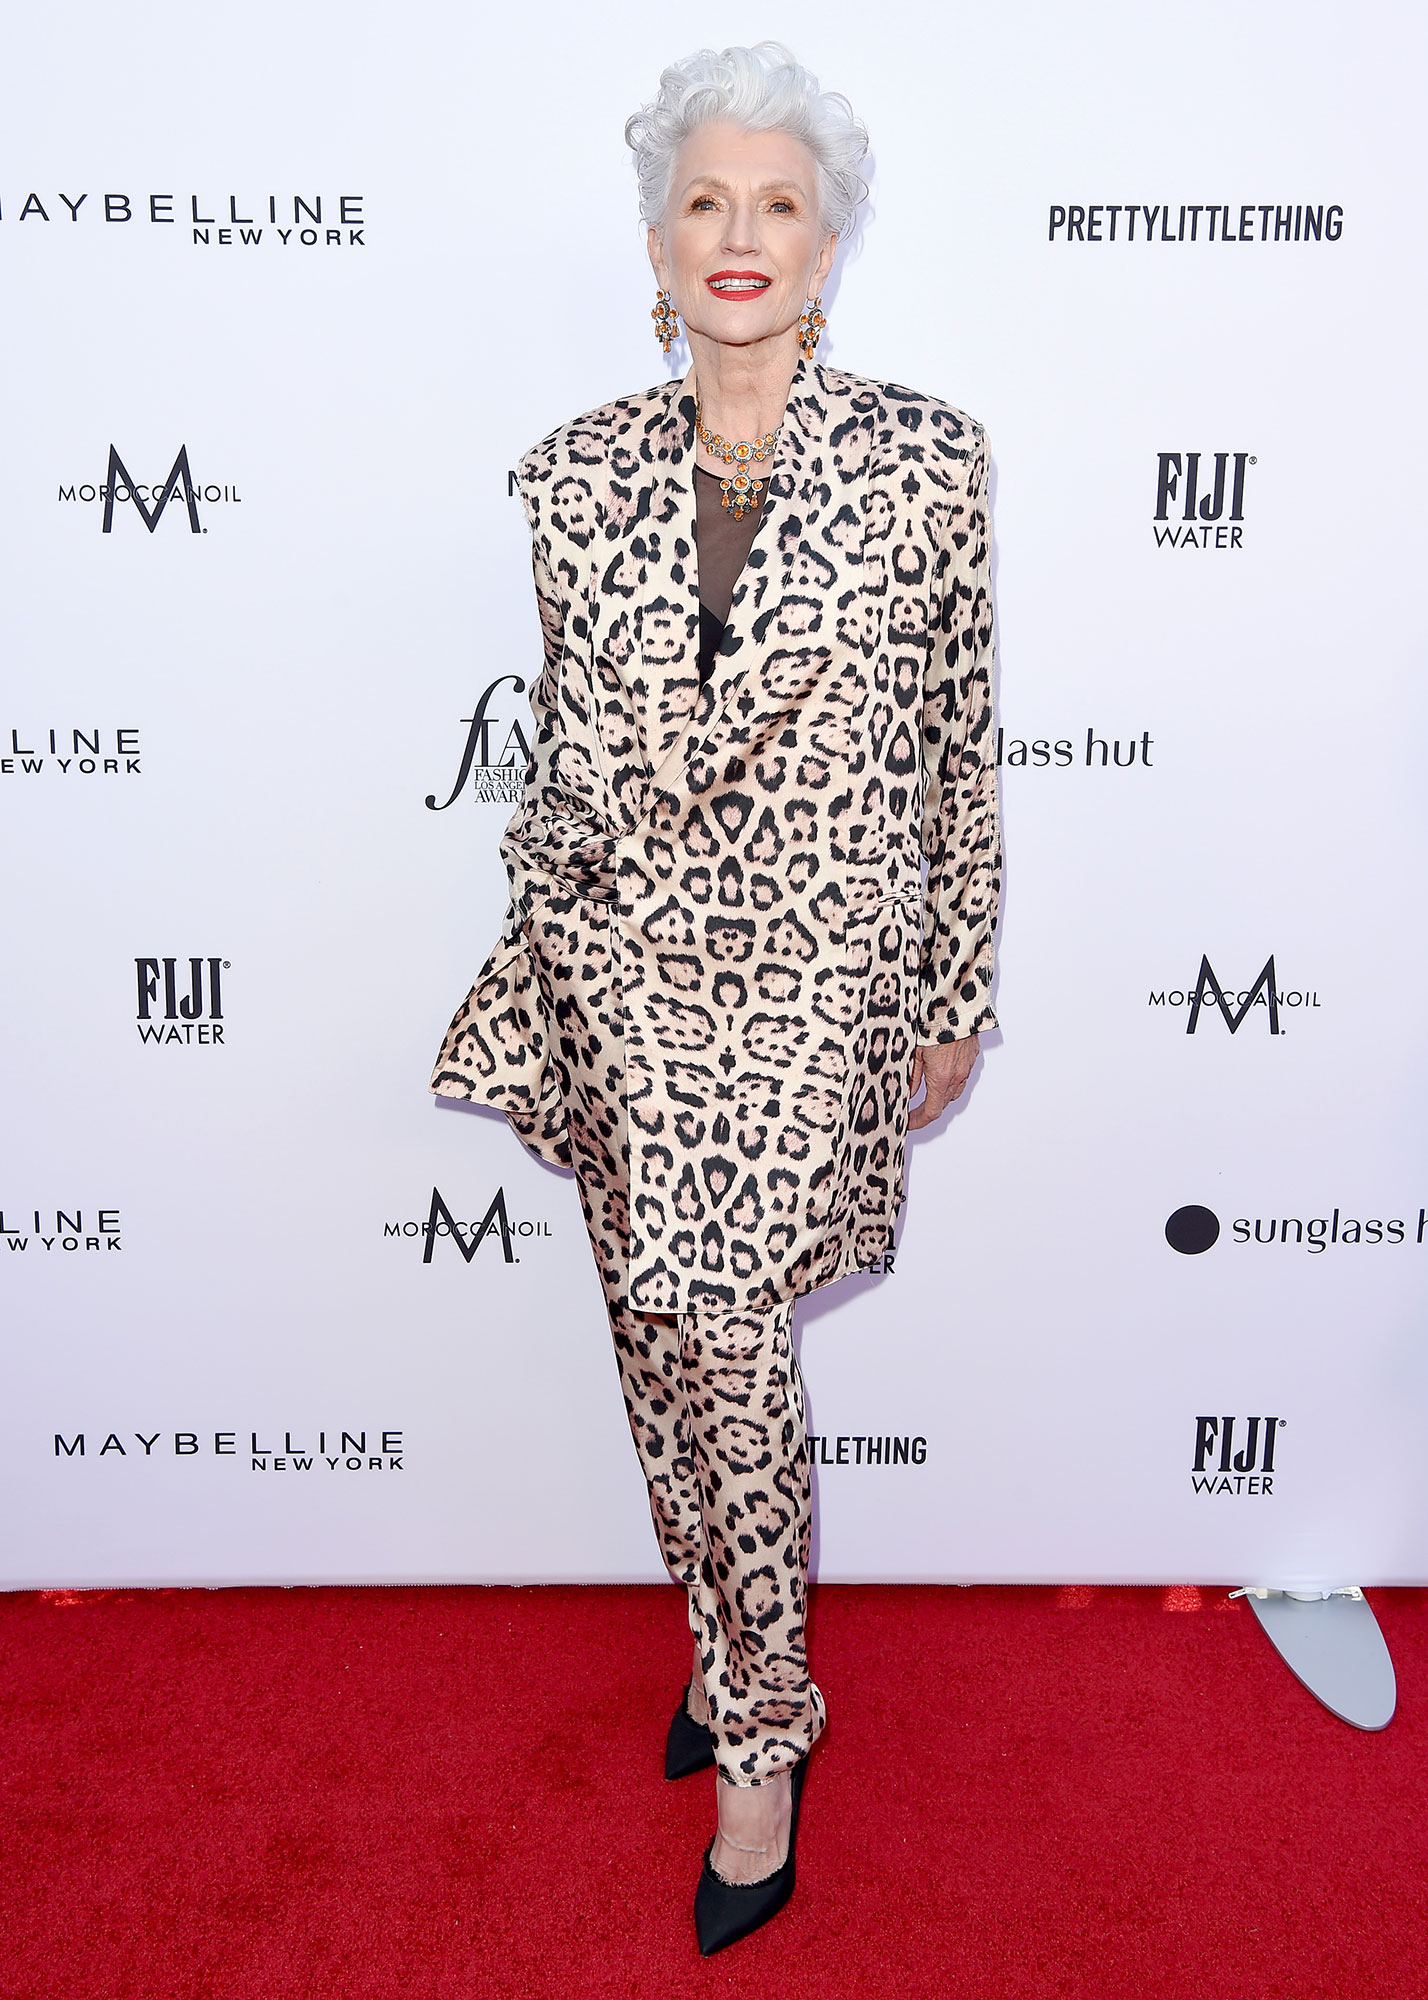 Stars Brought Their Style A-Game to the Daily Front Row Fashion Awards - The 70-year-old model really brought it with her bold animal print suit.